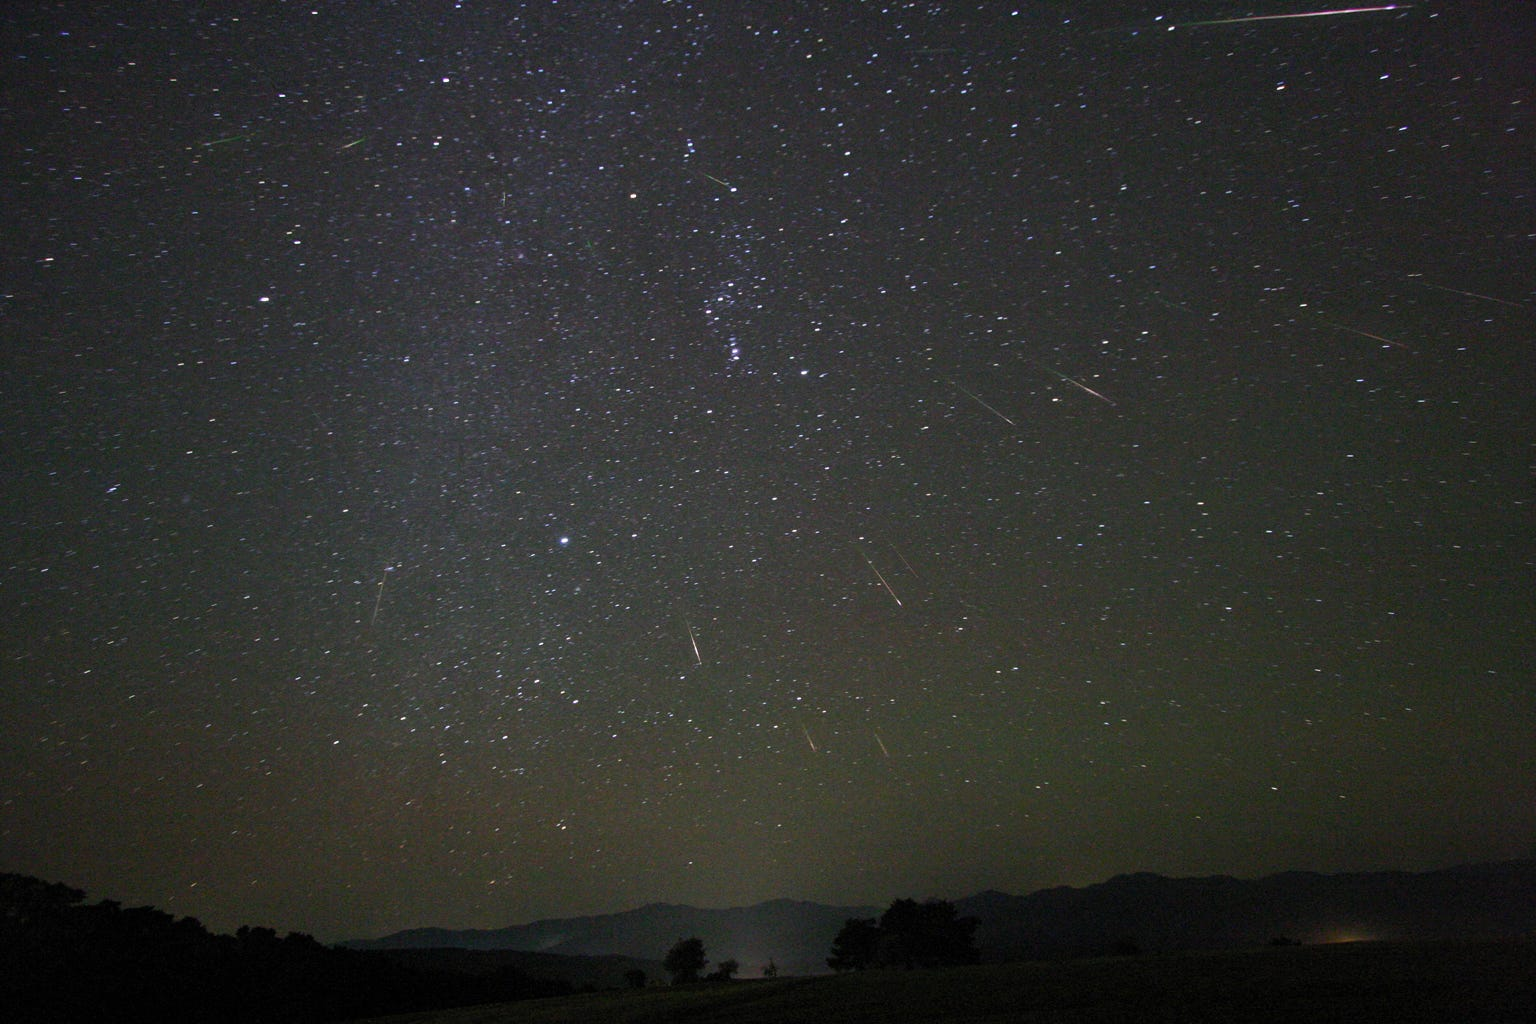 Mysterious fireball races across Michigan sky, stokes speculation about what it might be